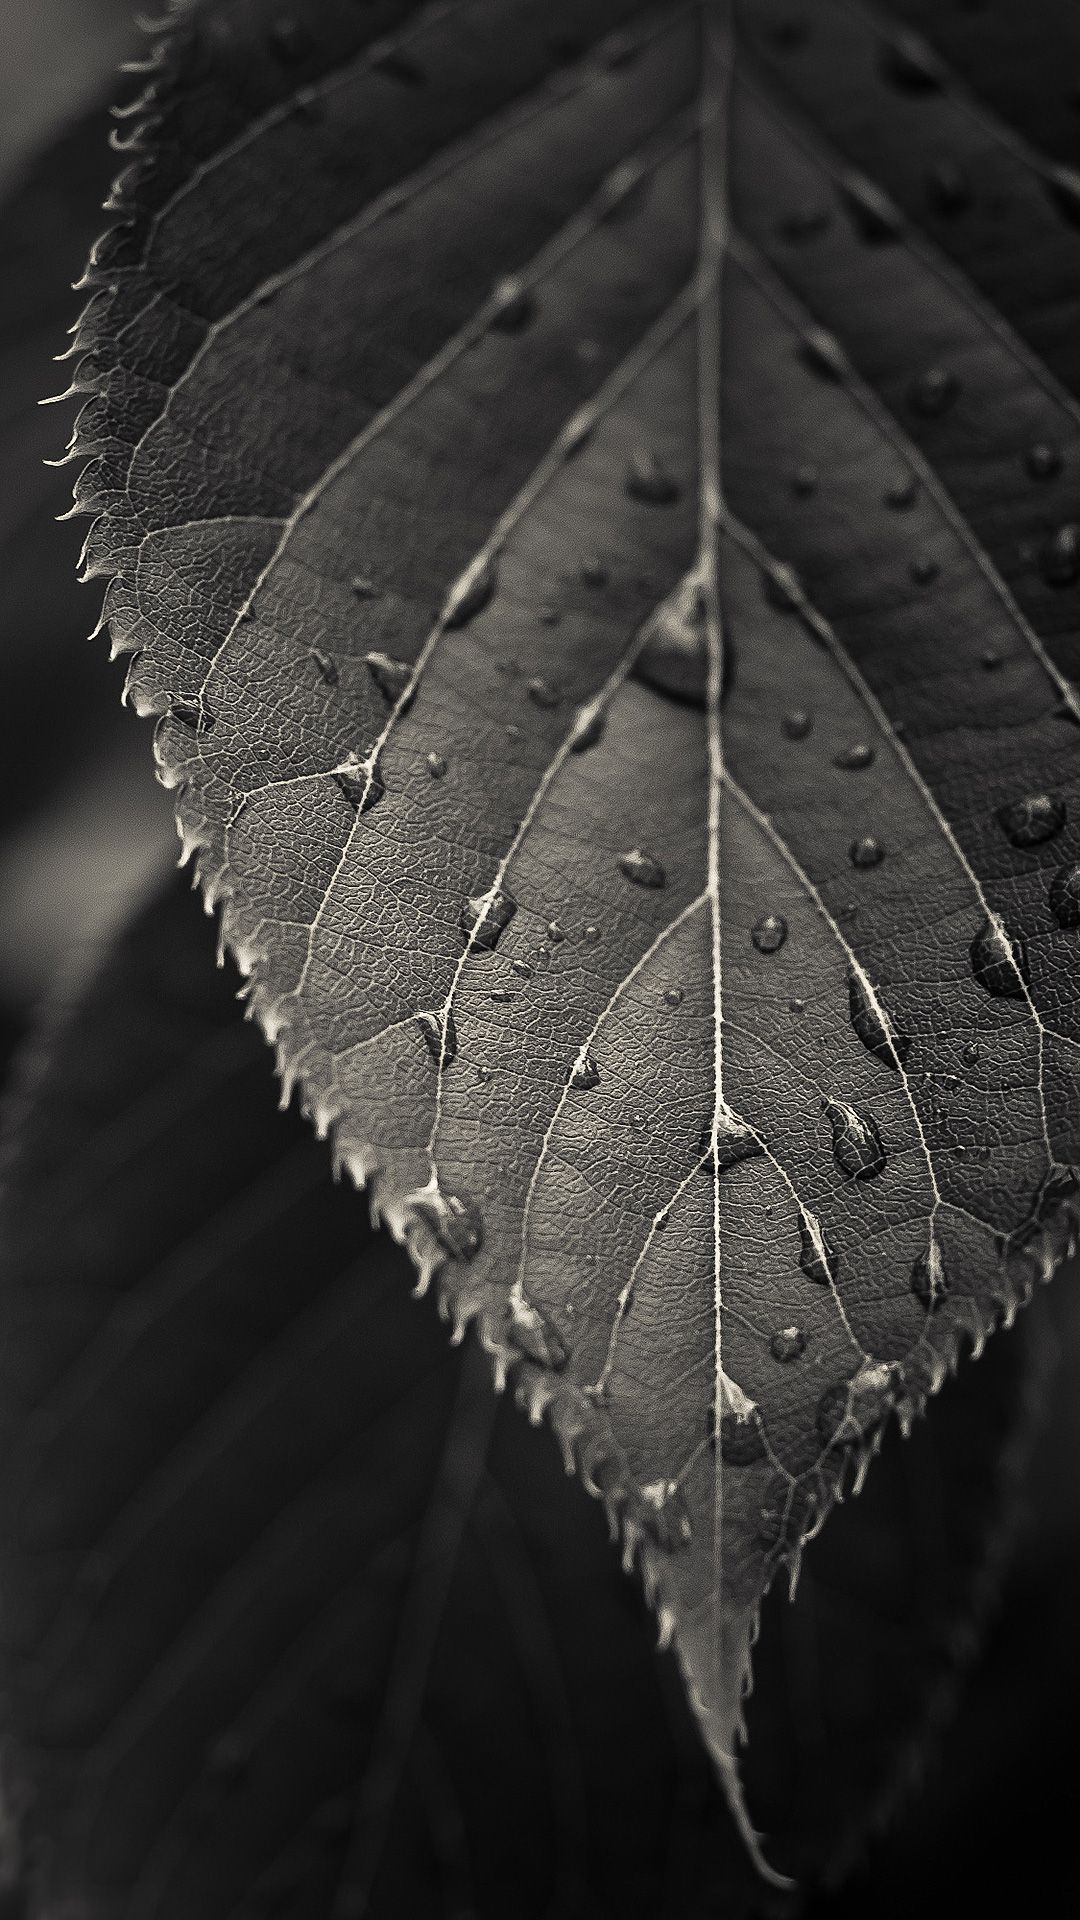 Leaf htc one wallpaper best htc one wallpapers images leaf htc one wallpaper best htc one wallpapers voltagebd Images